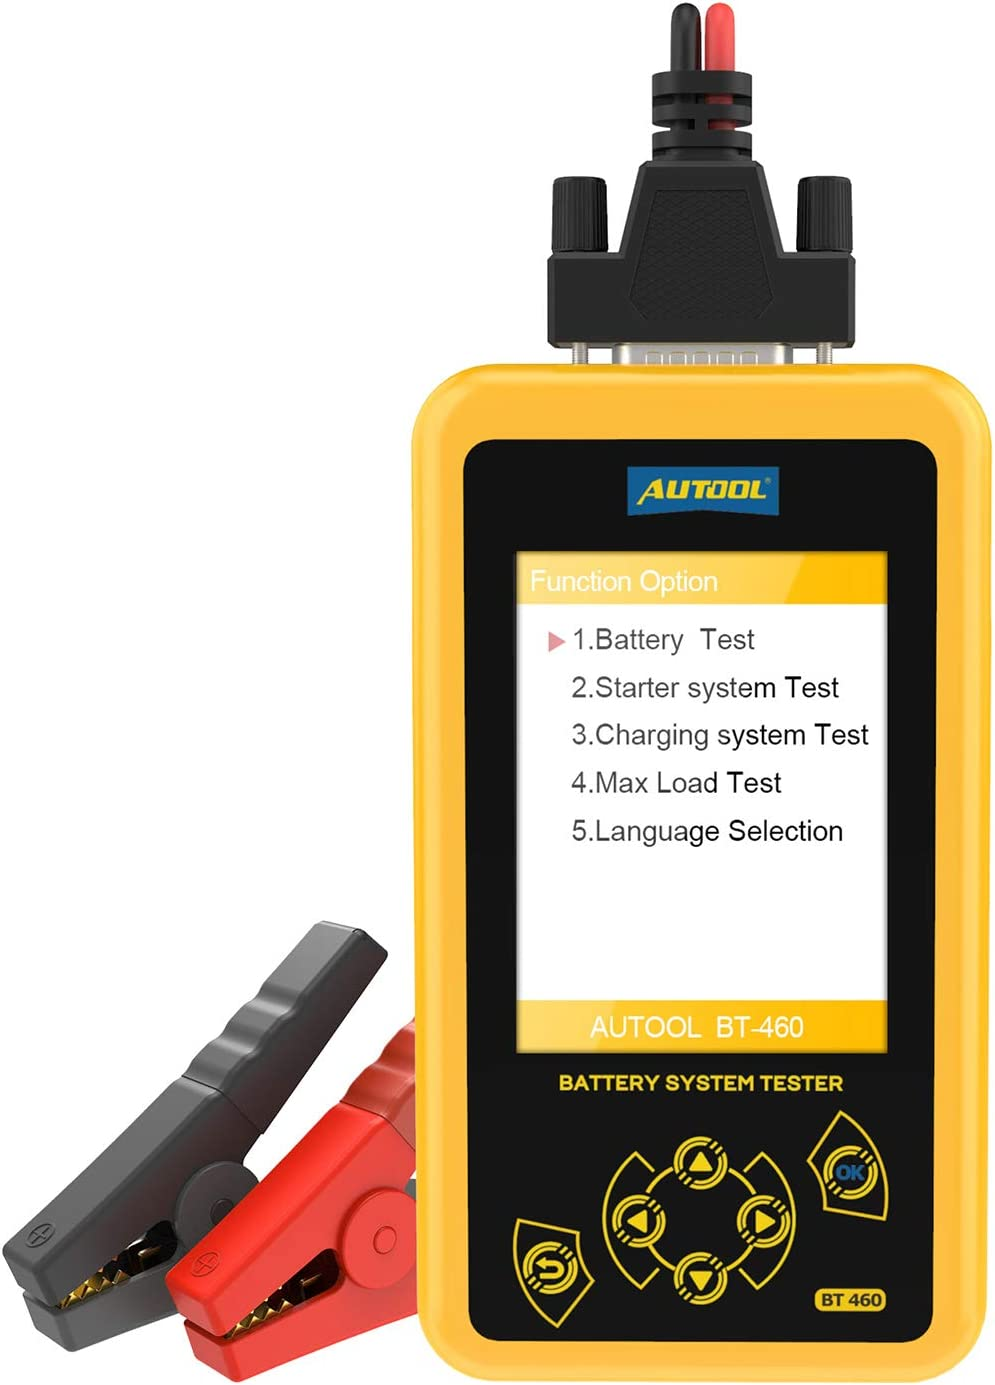 AUTOOL BT-460 12V/24V Auto Battery Load Tester